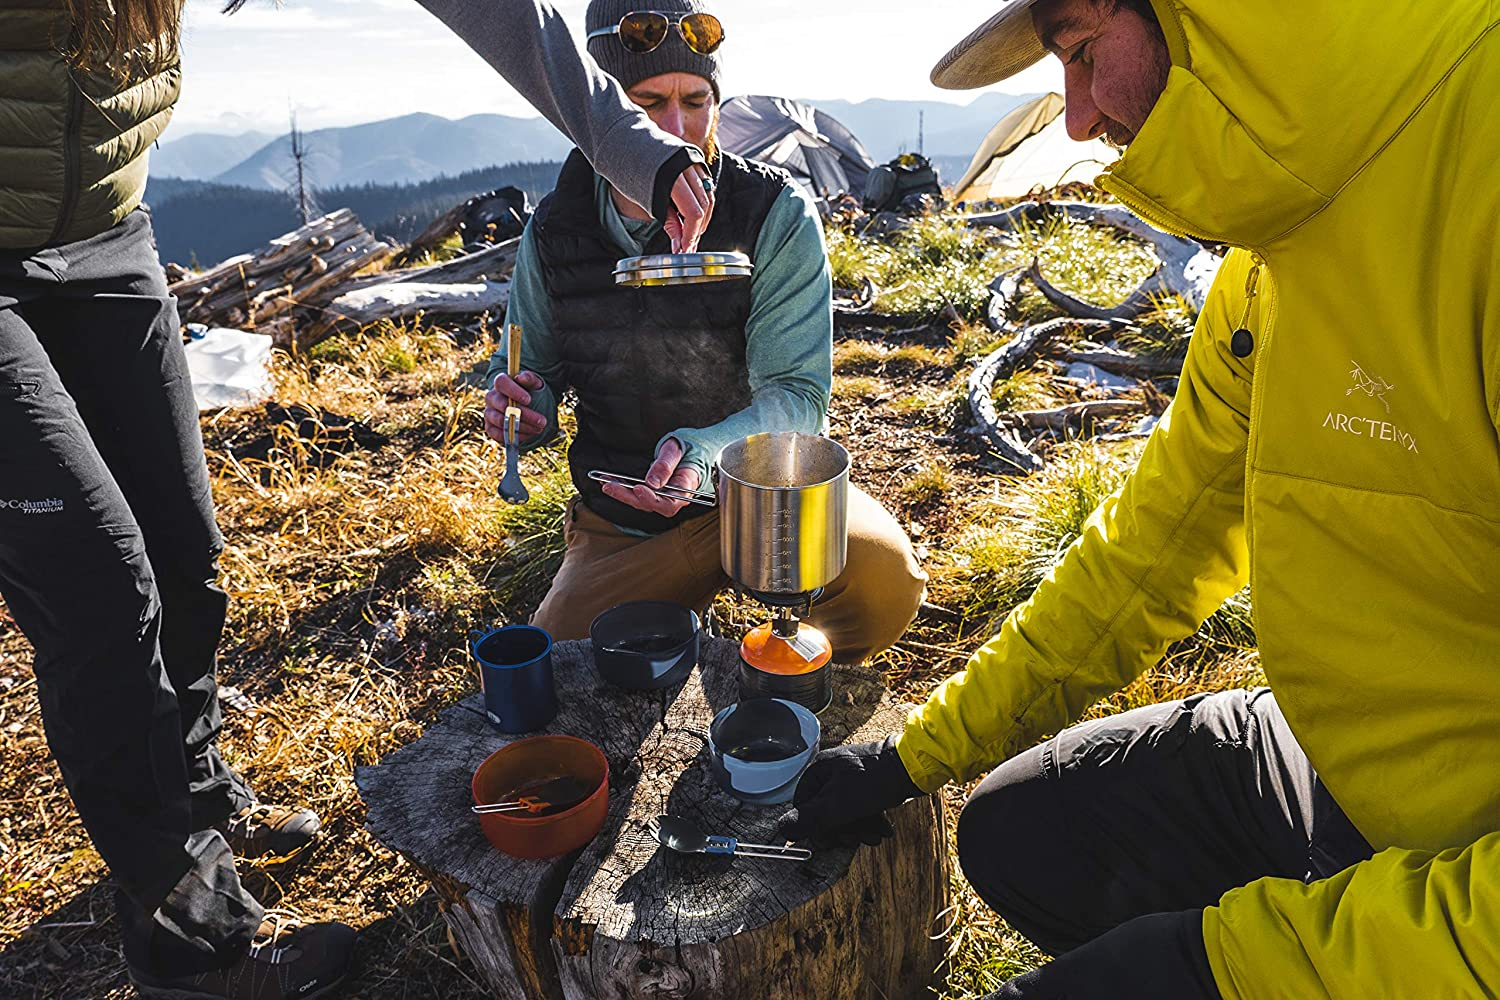 Gsi Outdoors Glacier Stainless Dualist Cooking System